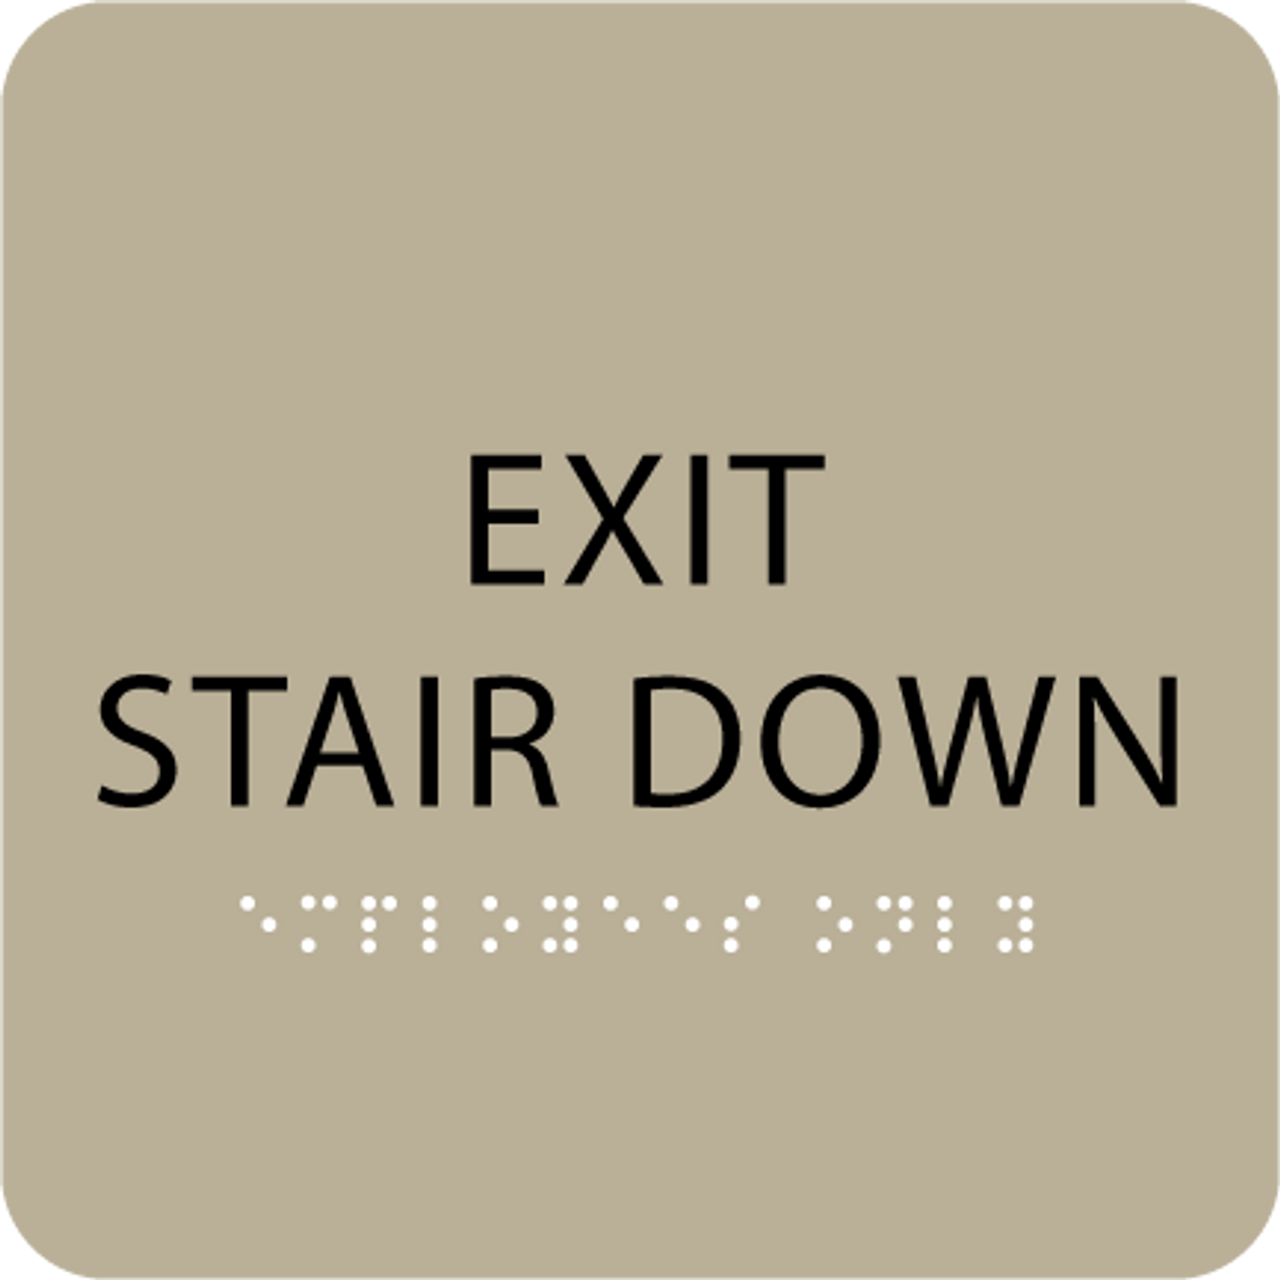 Brown Exit Stair Down Tactile Sign